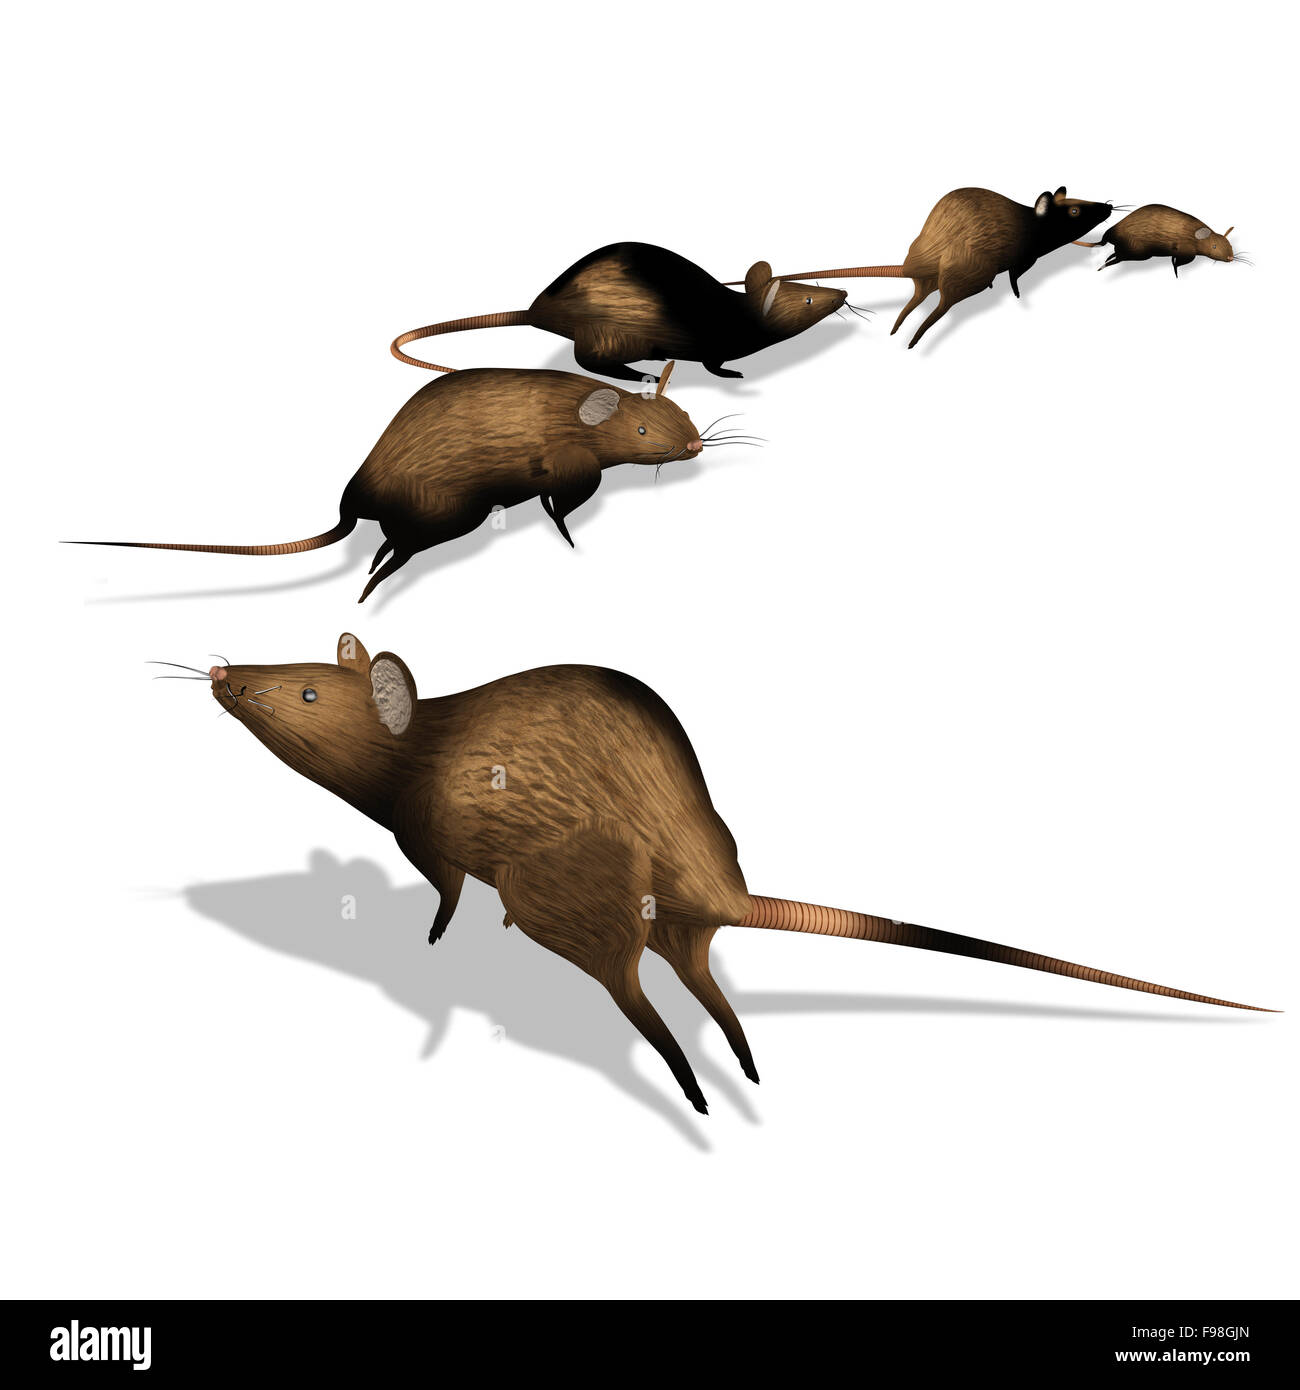 rats escape - Stock Image